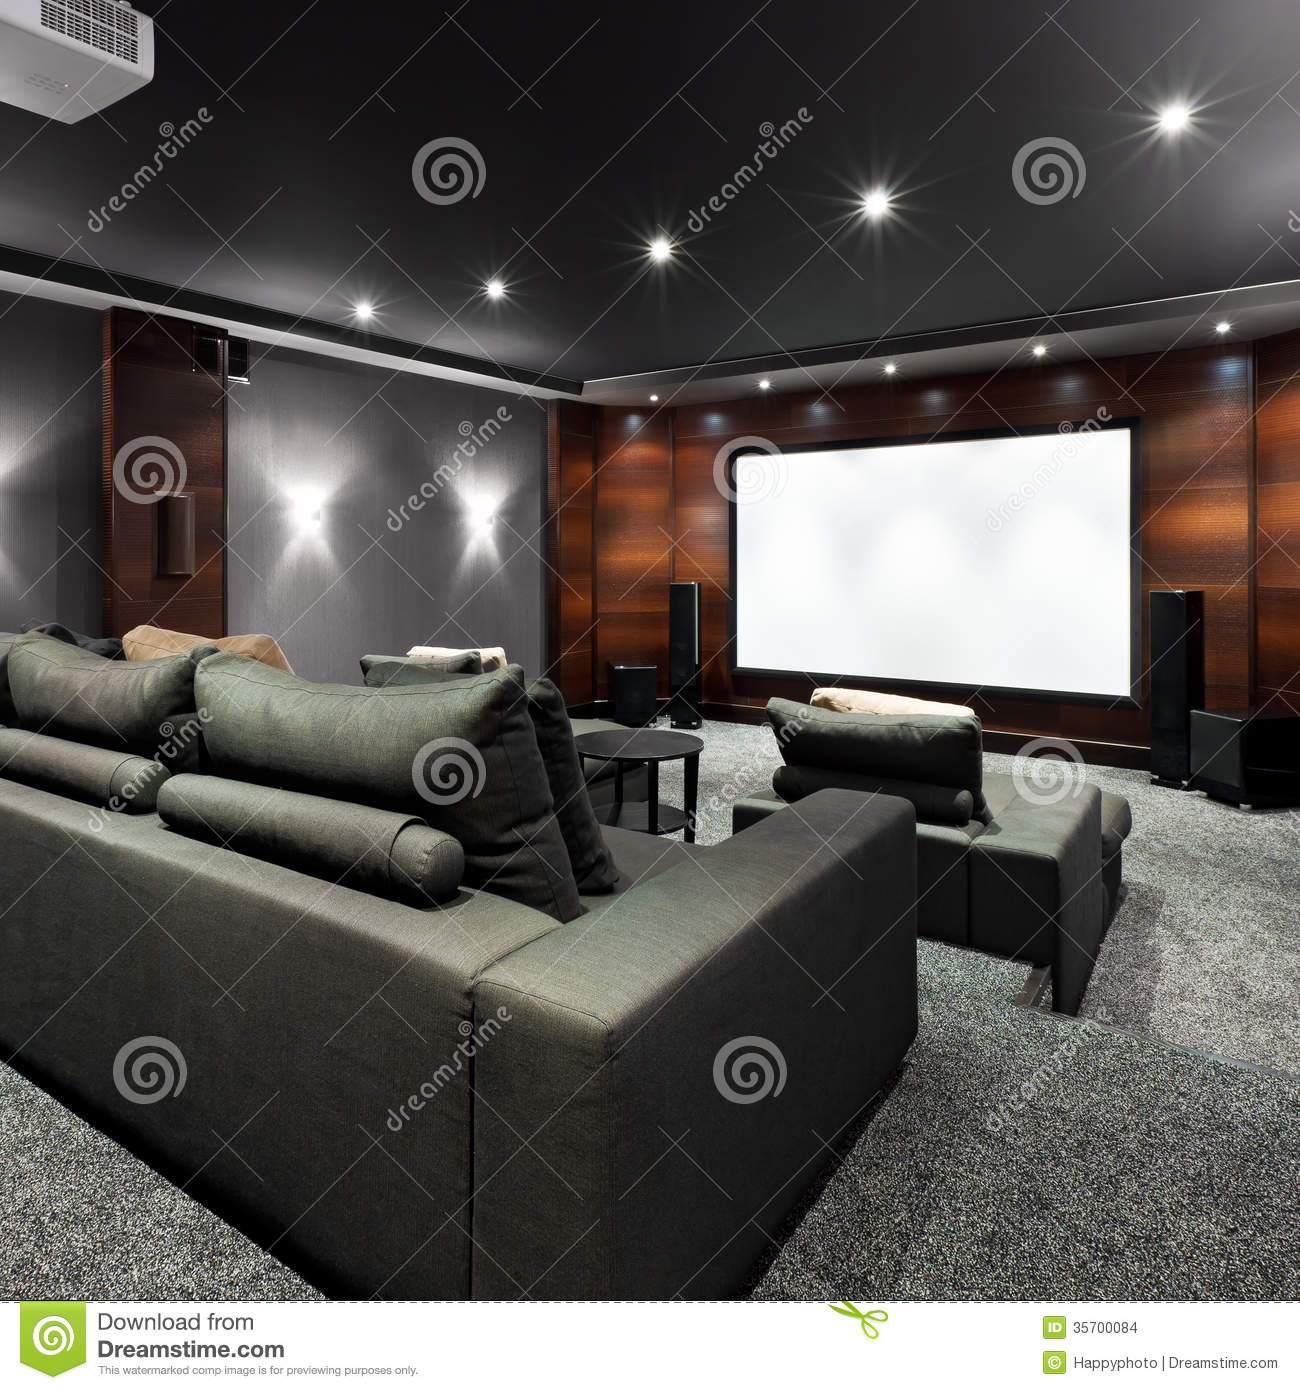 Home Theater Interior Stock Images - Image: 35700084